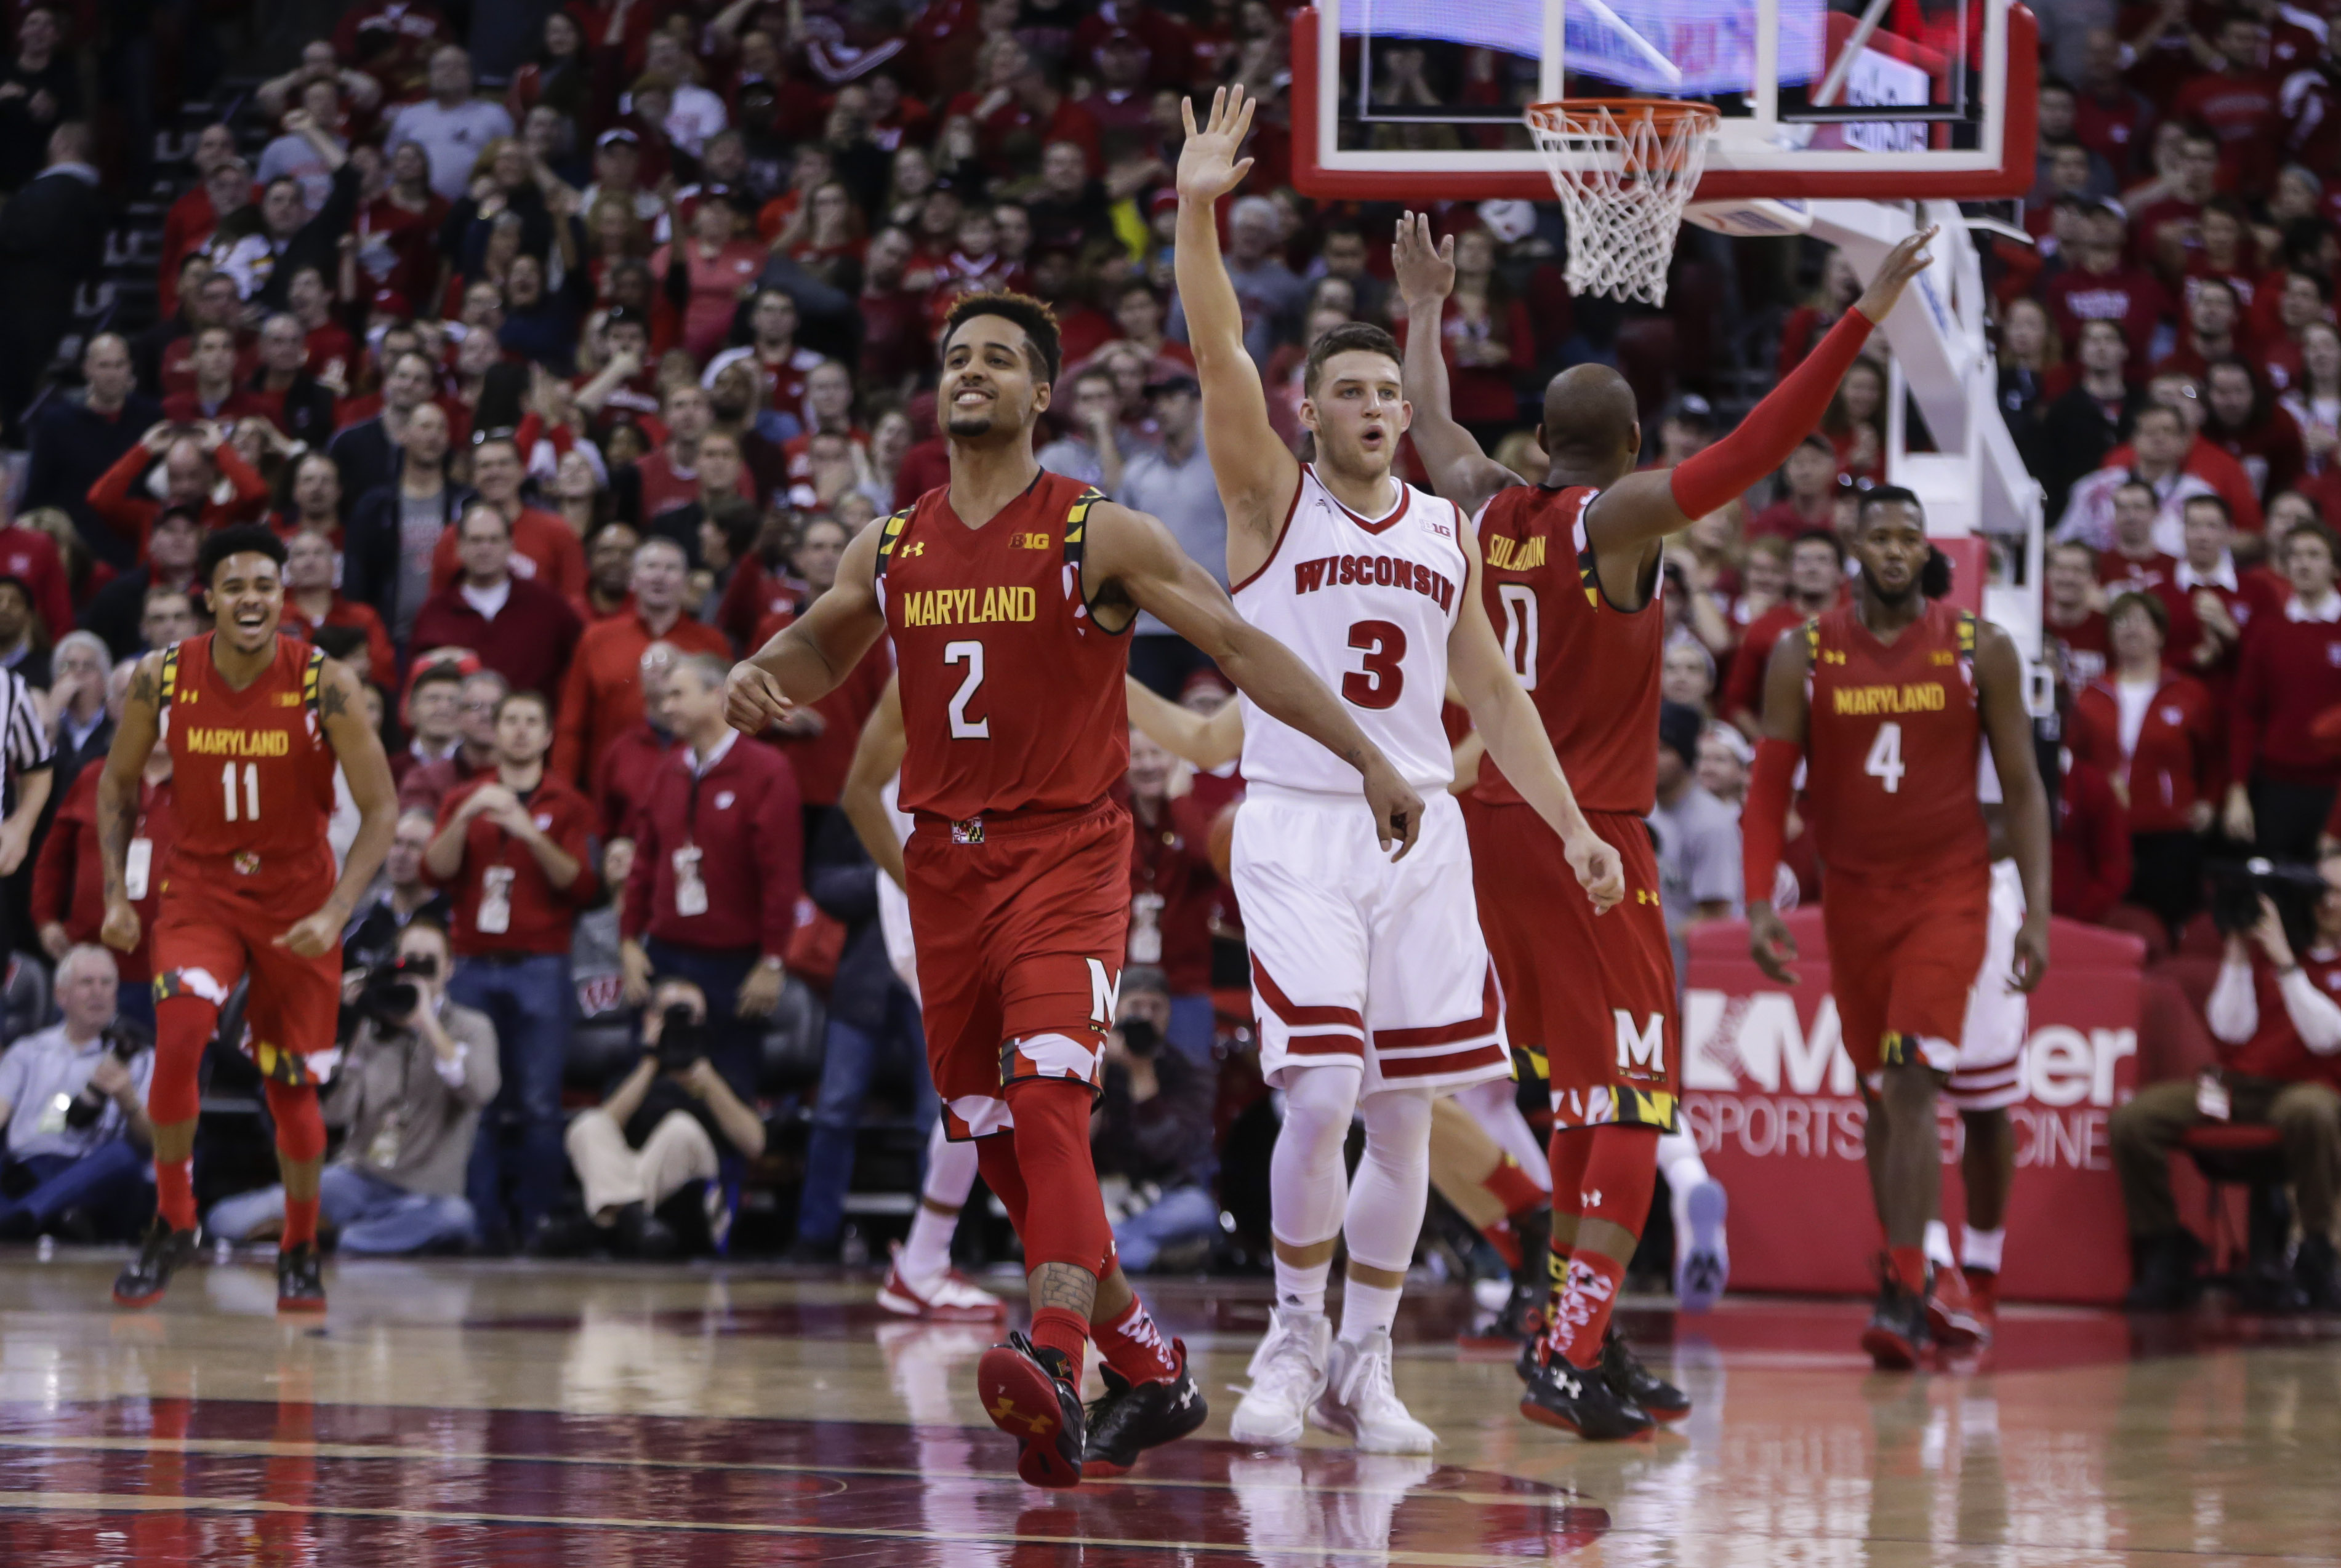 Maryland's Melo Trimble (2) reacts after hitting the game-winning basket against Wisconsin in the final seconds of an NCAA college basketball game Saturday, Jan. 9, 2016, in Madison, Wis. Maryland won 63-60. (AP Photo/Andy Manis)